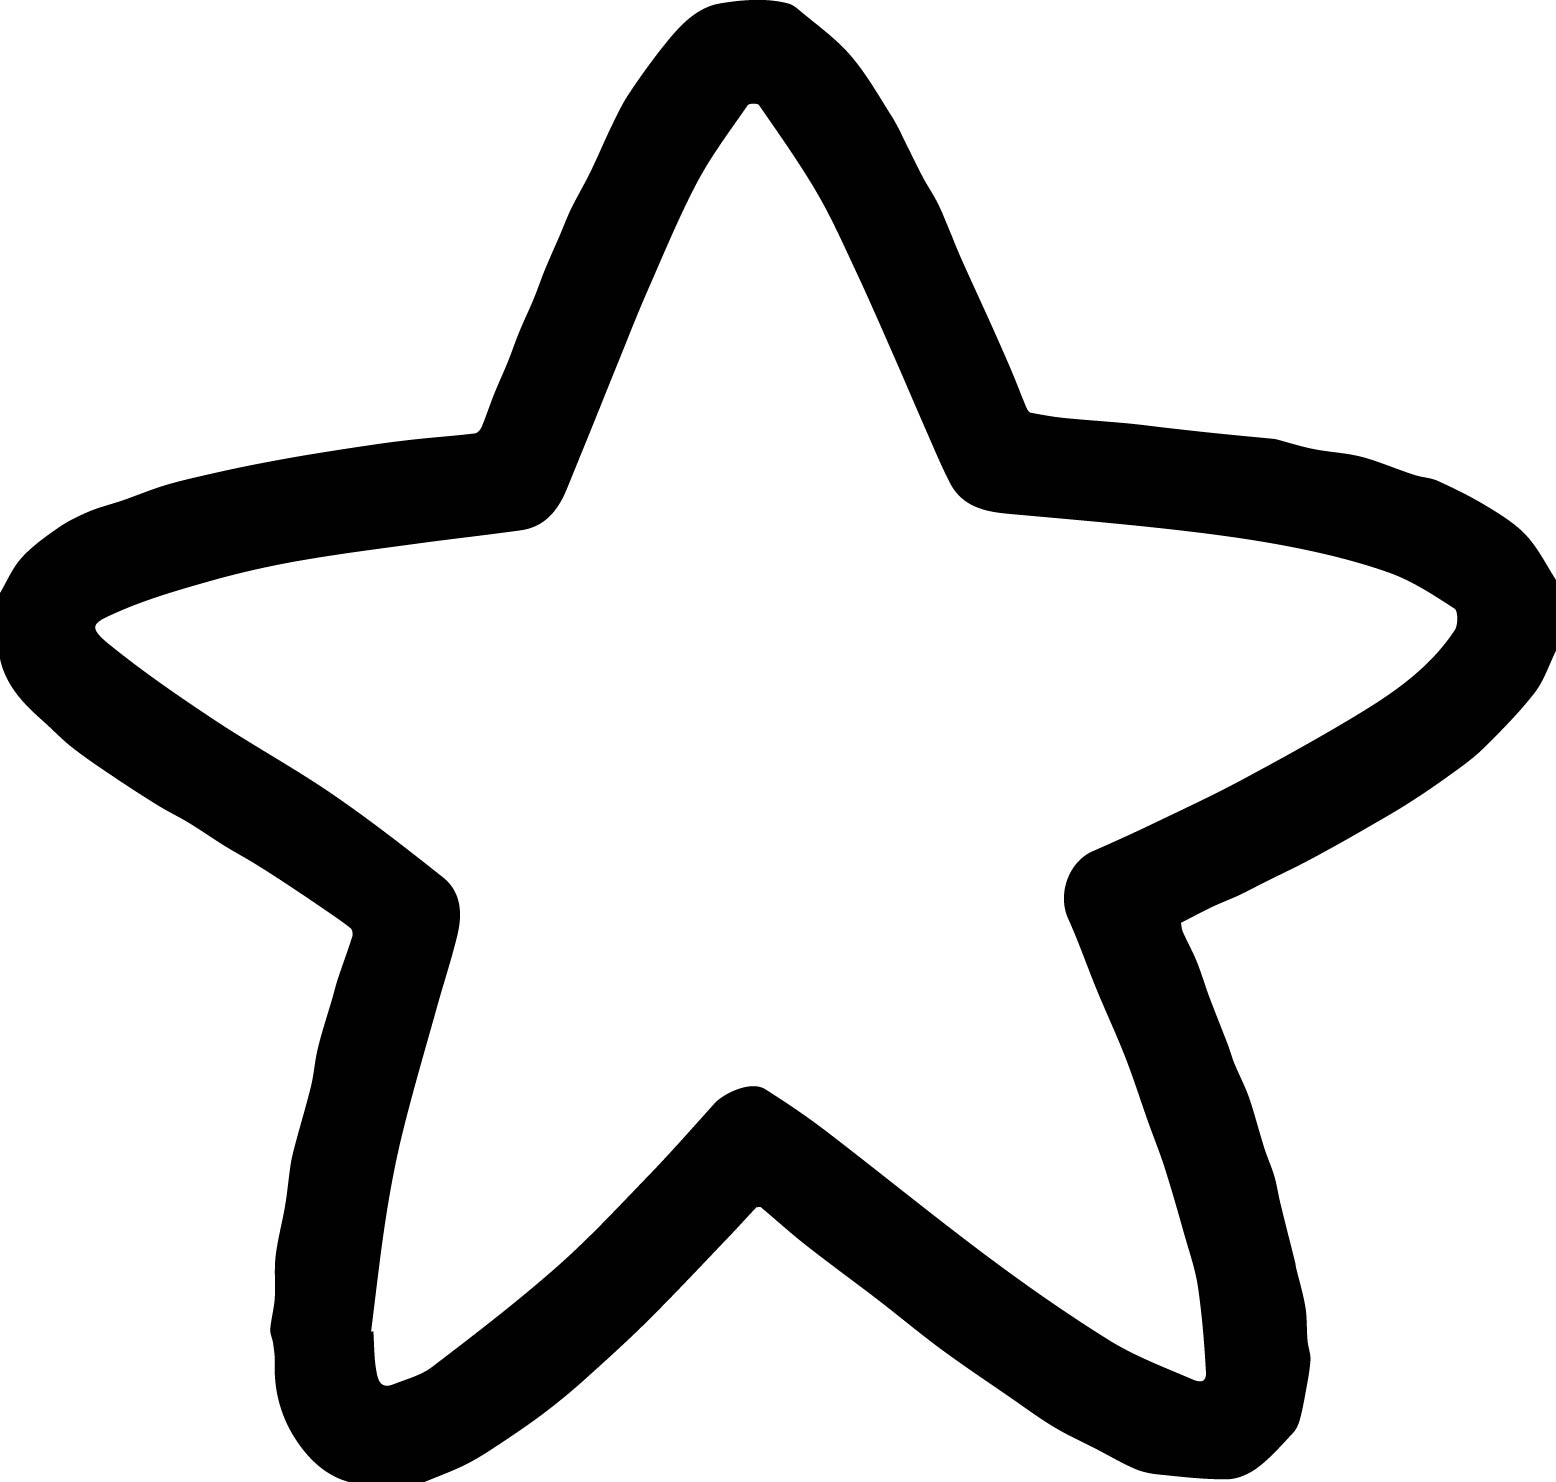 simple star coloring page - Coloring Pages Simple